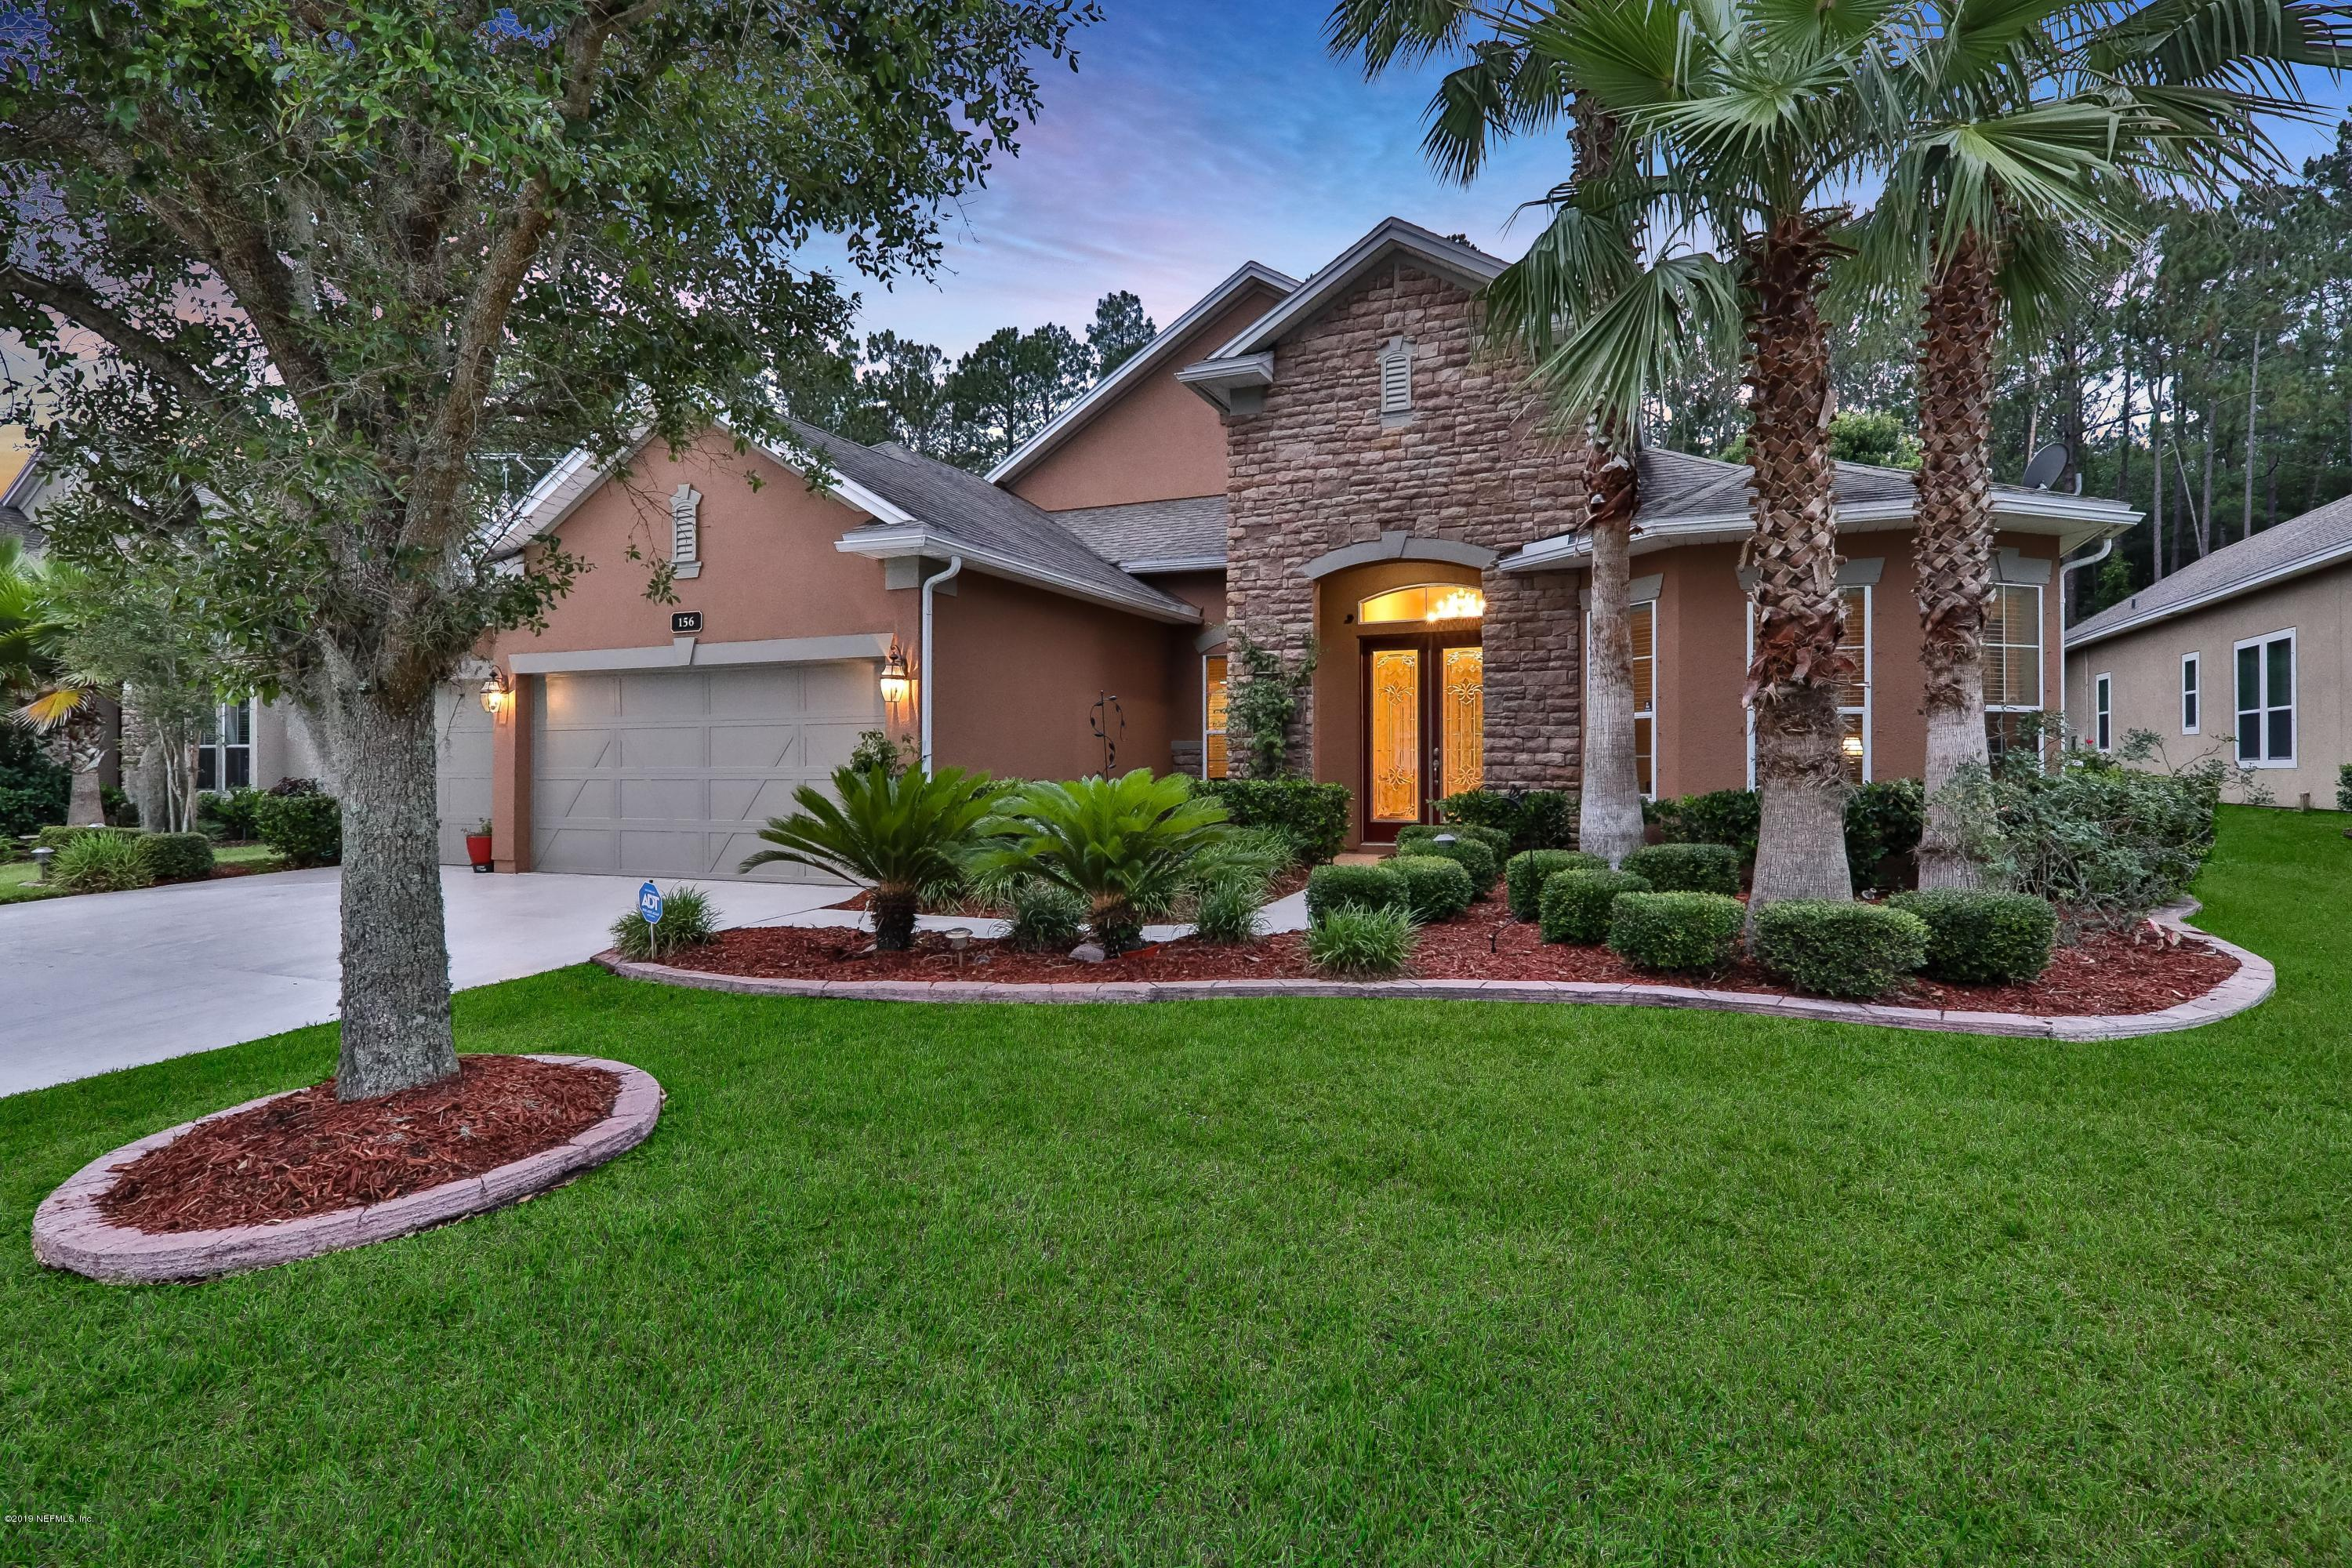 156 MYRTLE BROOK, PONTE VEDRA, FLORIDA 32081, 5 Bedrooms Bedrooms, ,4 BathroomsBathrooms,Residential - single family,For sale,MYRTLE BROOK,999638